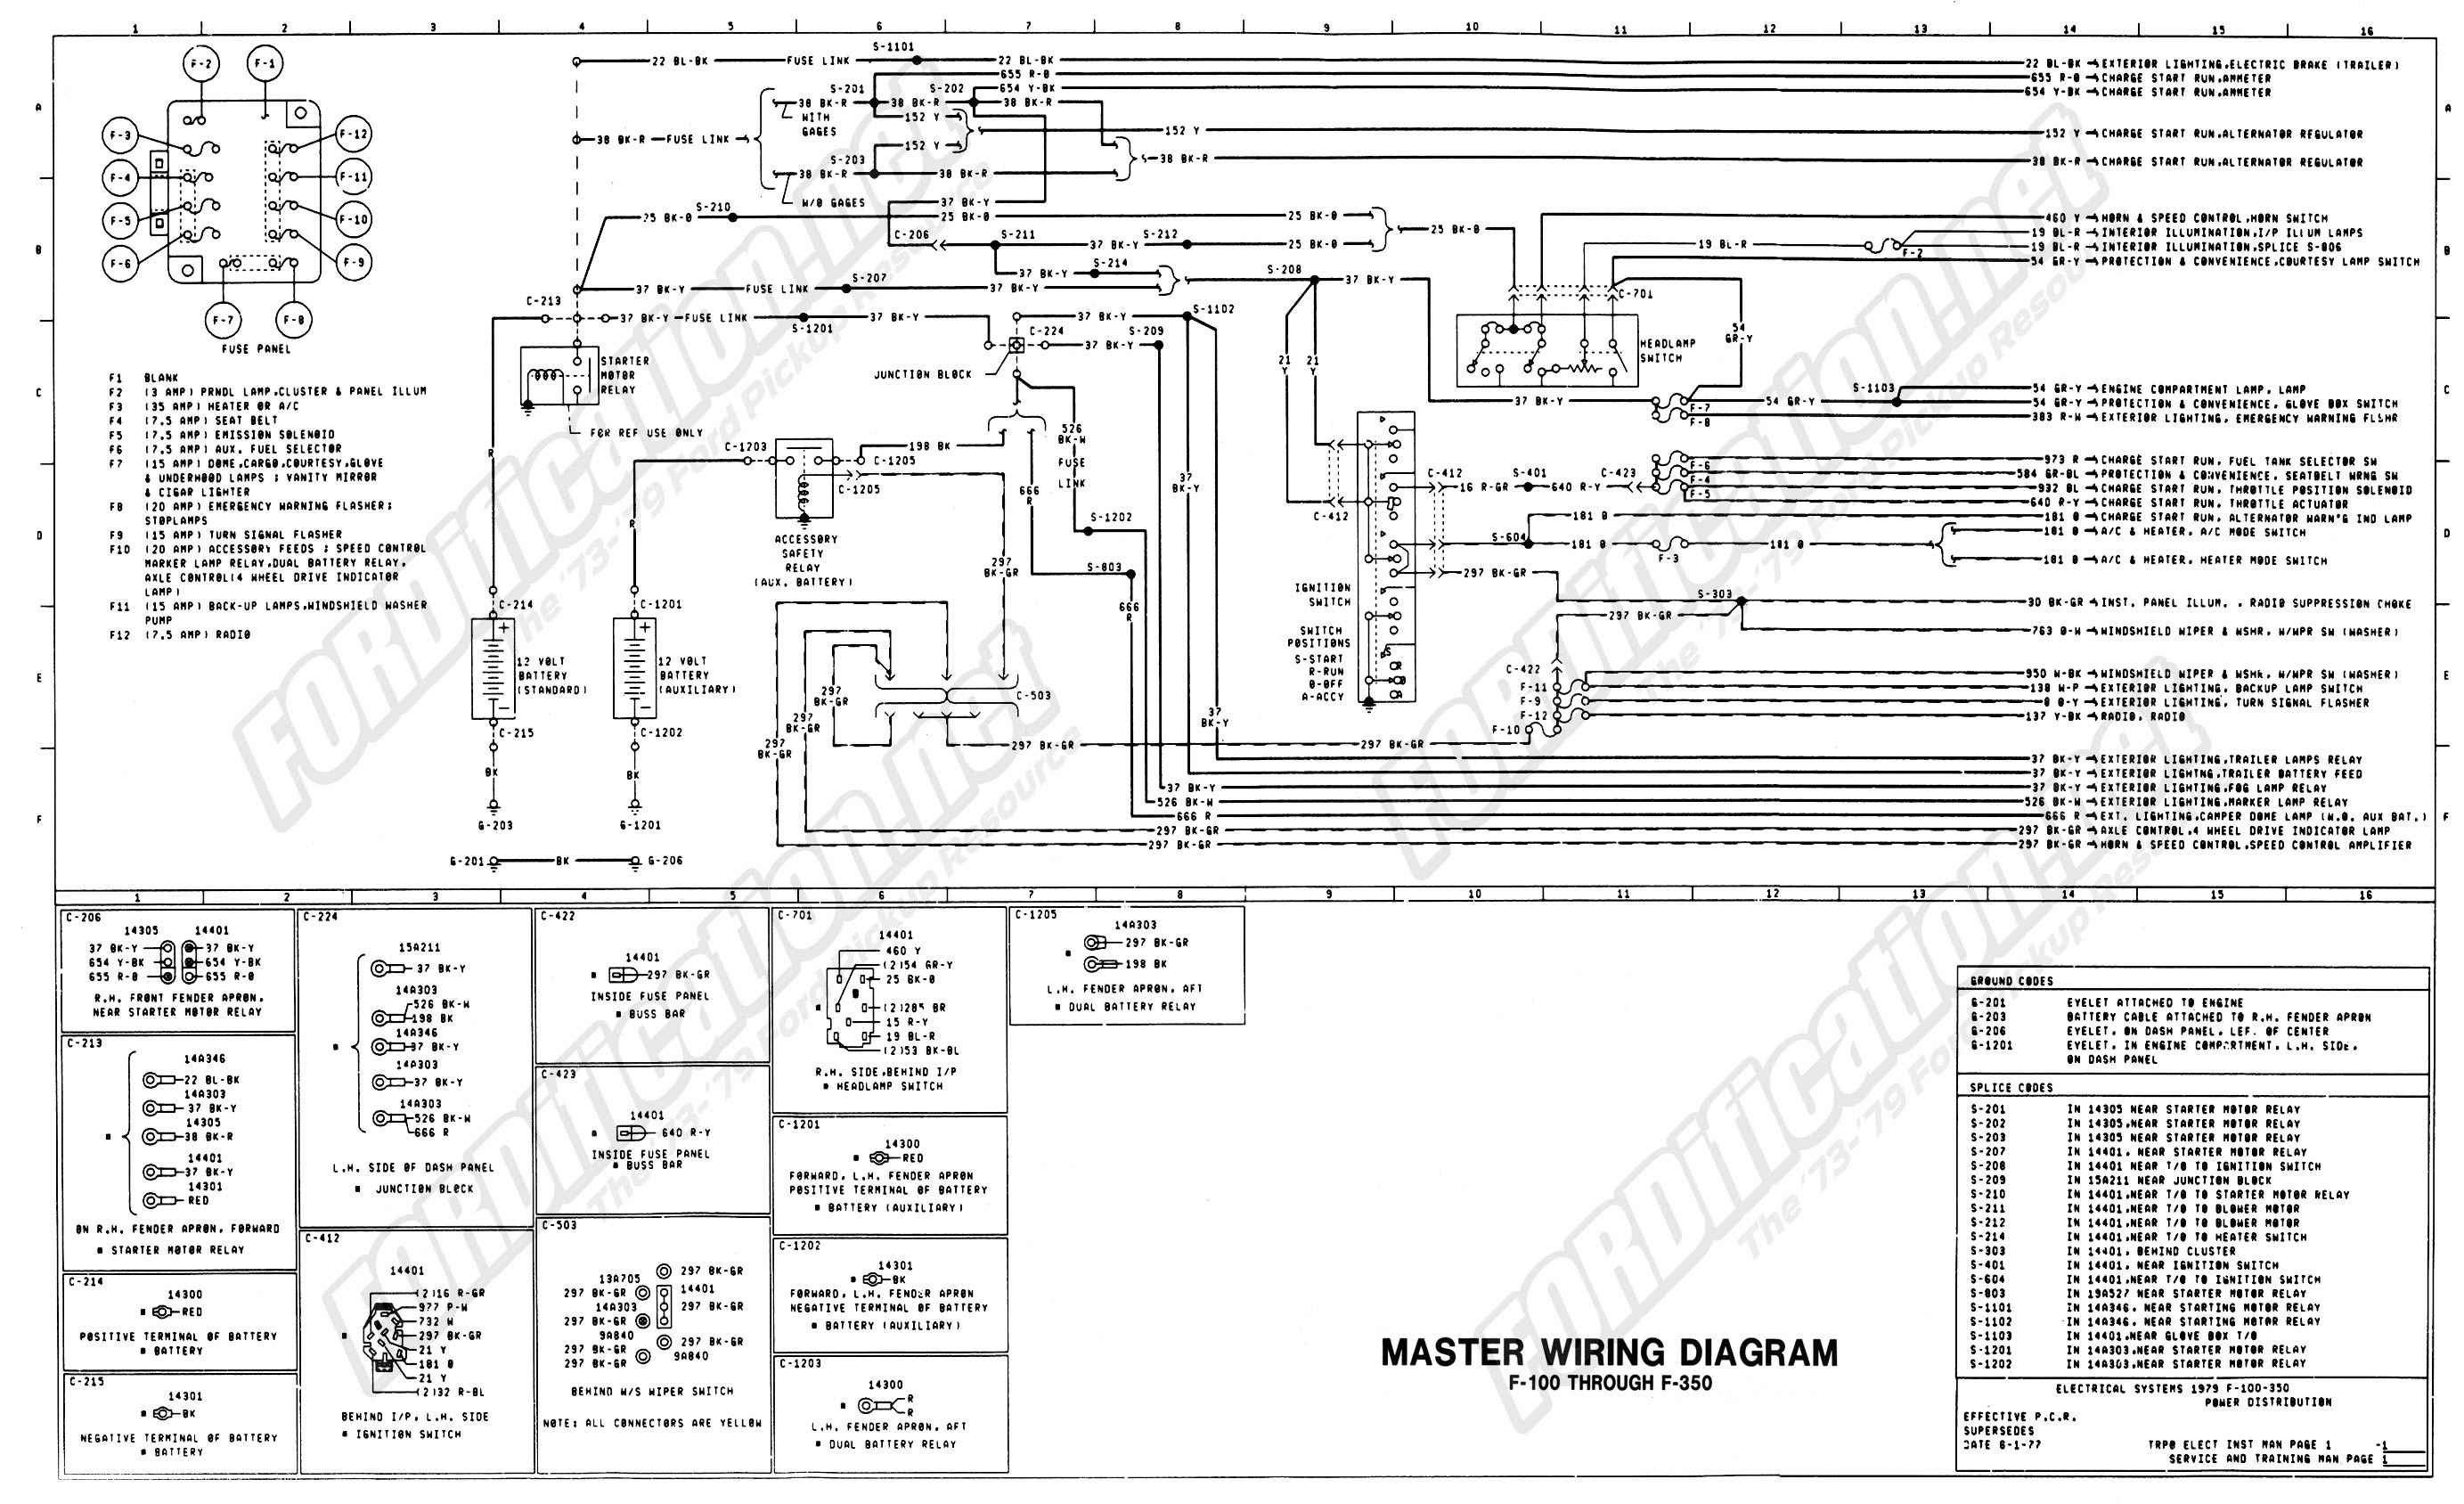 07 ford ranger radio wiring diagram dual element water heater 1988 f150 gallery